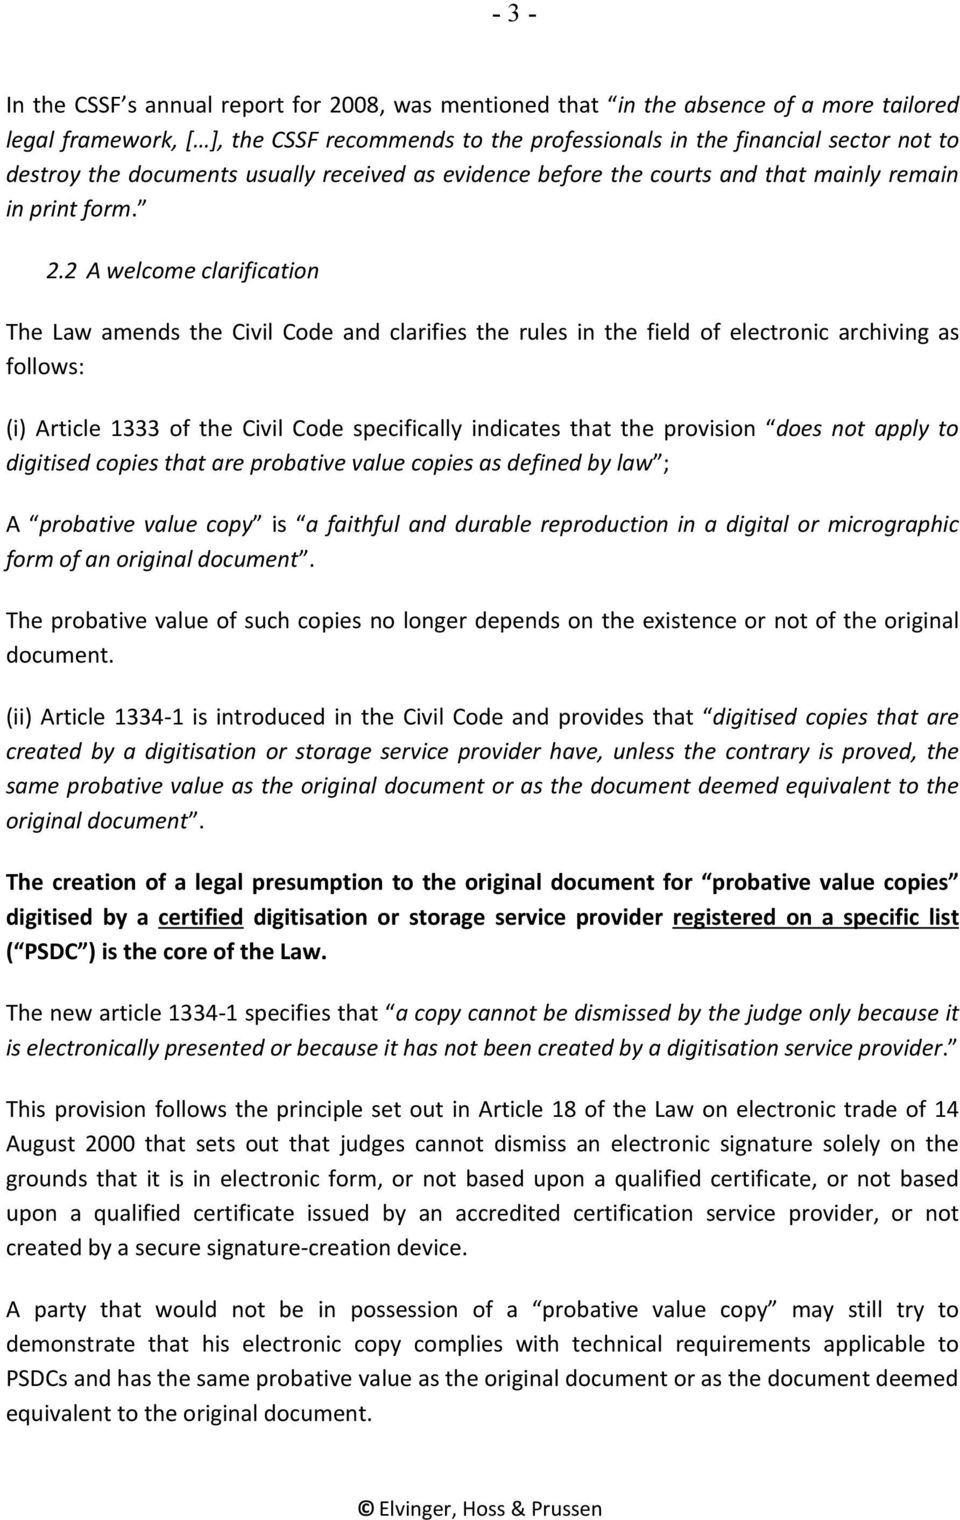 2 A welcome clarification The Law amends the Civil Code and clarifies the rules in the field of electronic archiving as follows: (i) Article 1333 of the Civil Code specifically indicates that the